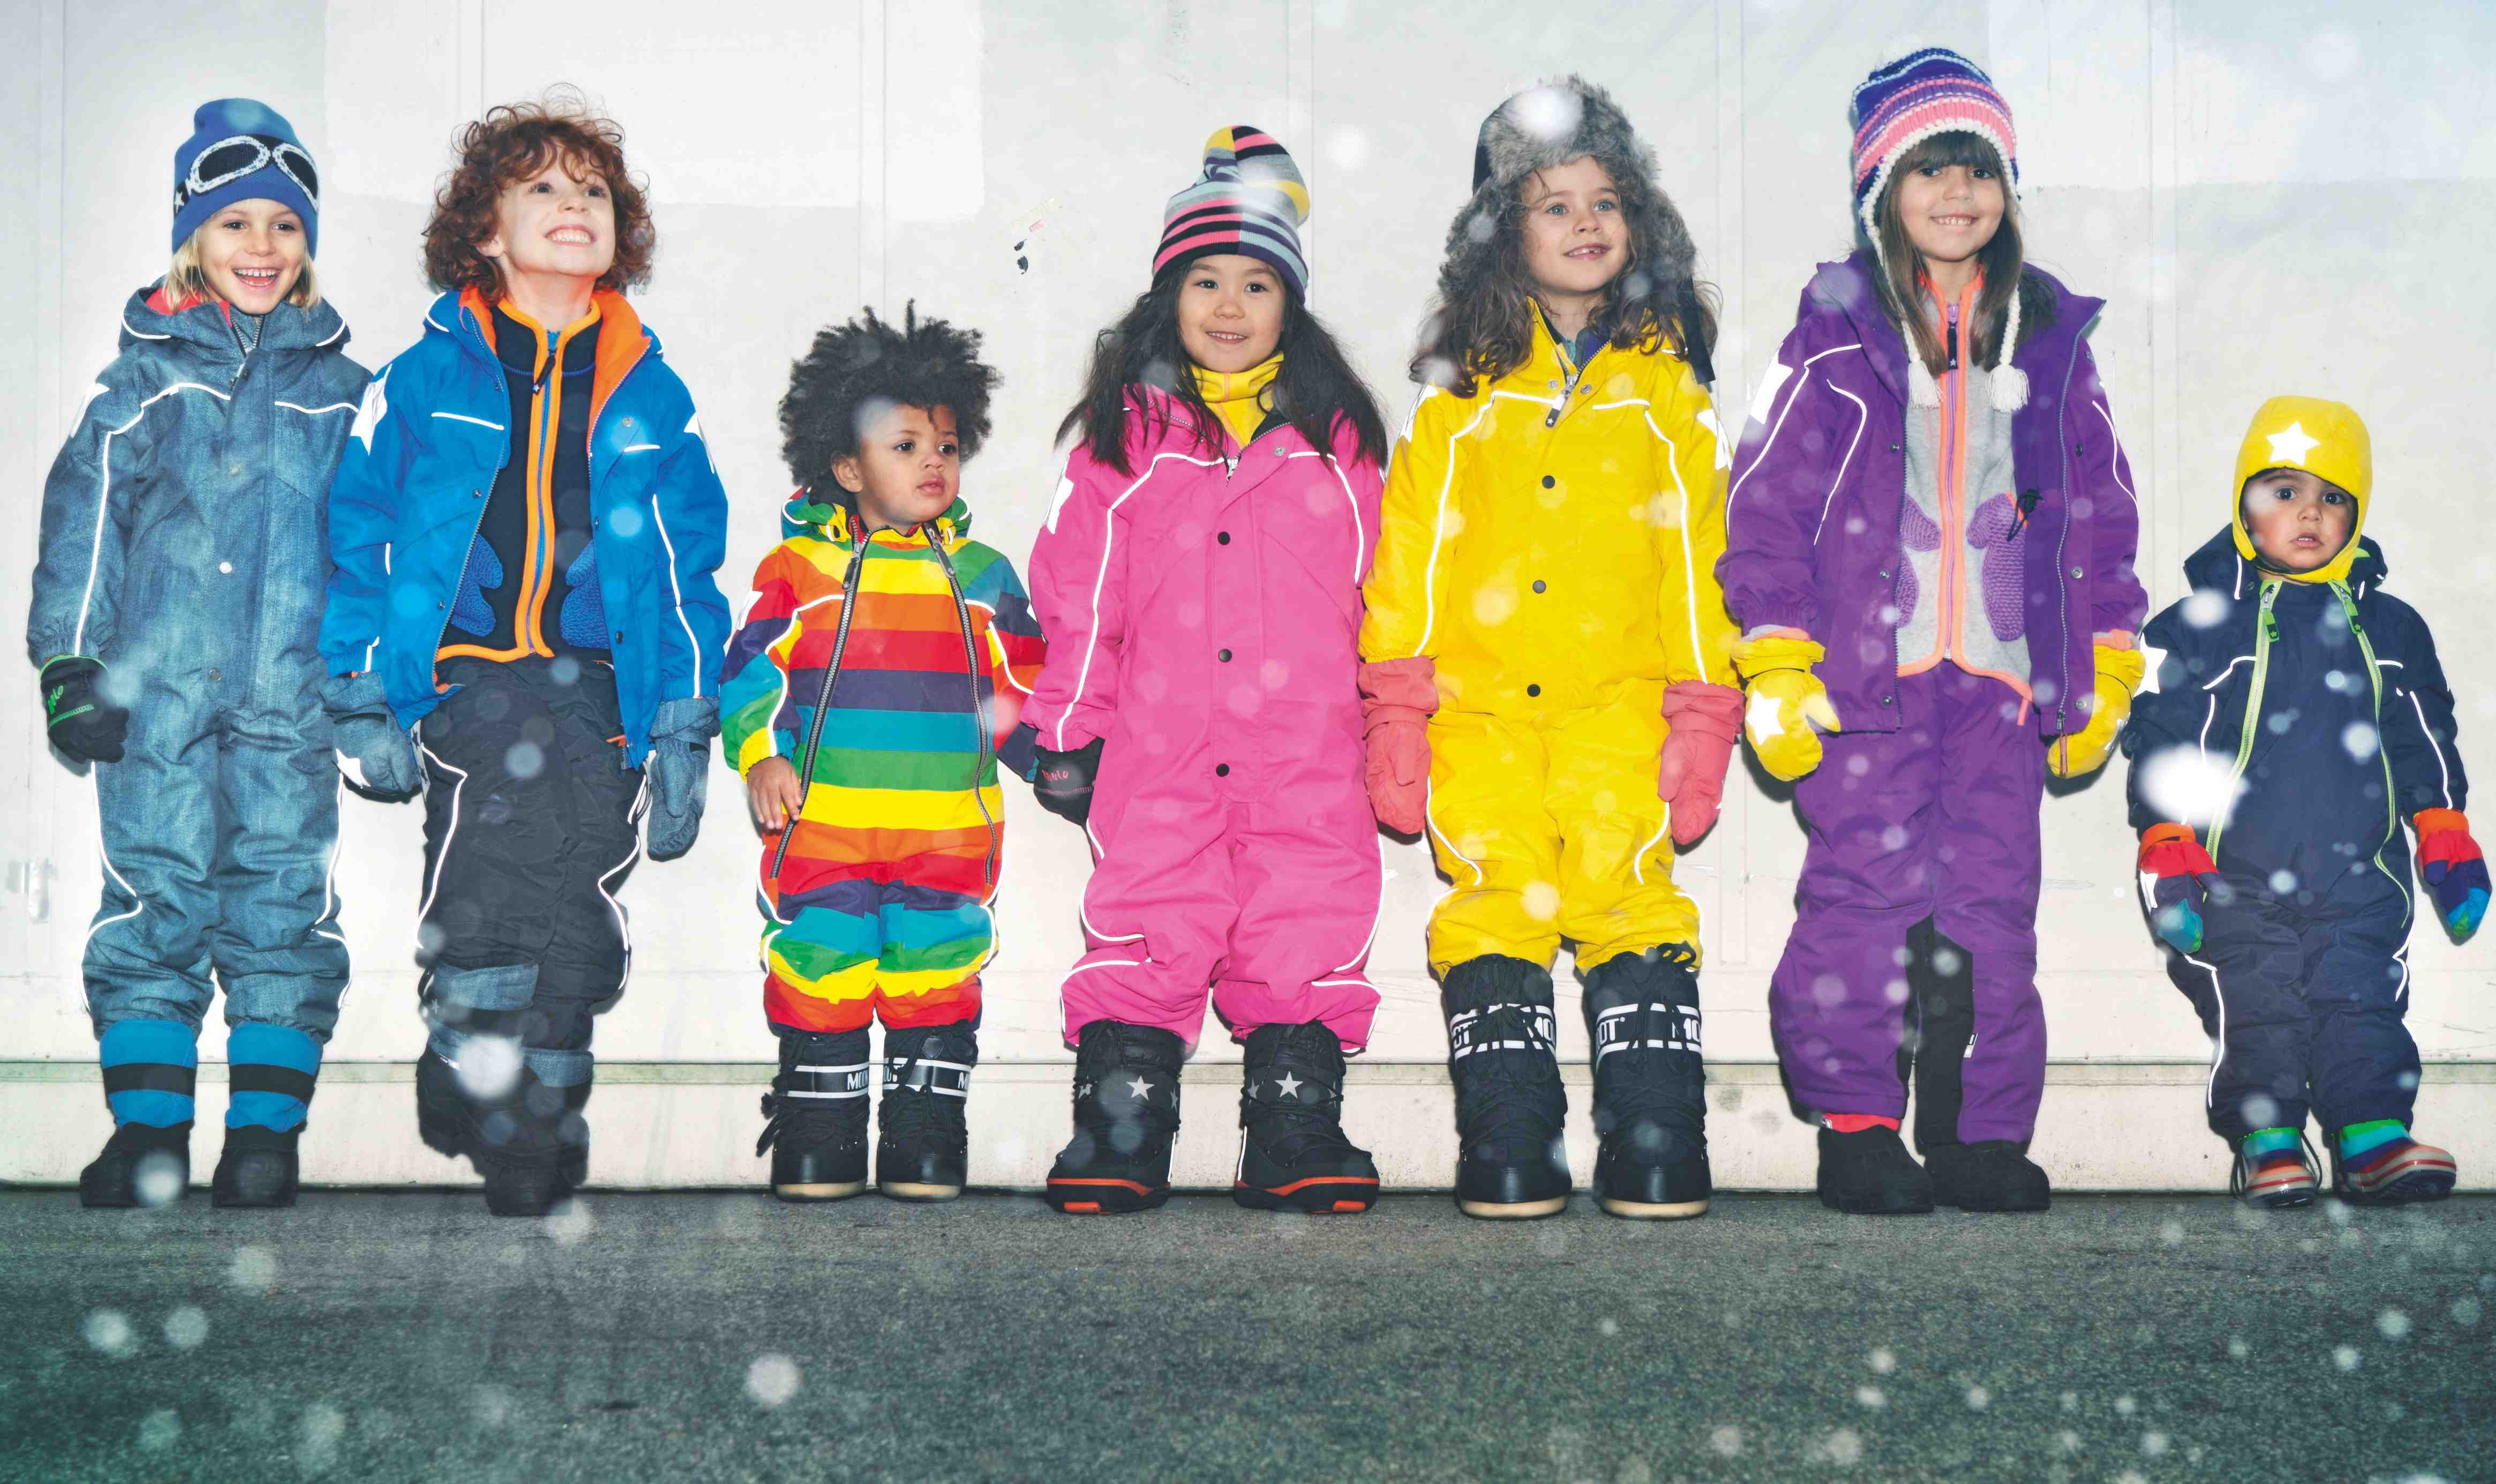 Ski Fashion 2012 2013 Winter Styles for Cool Kids | The ...